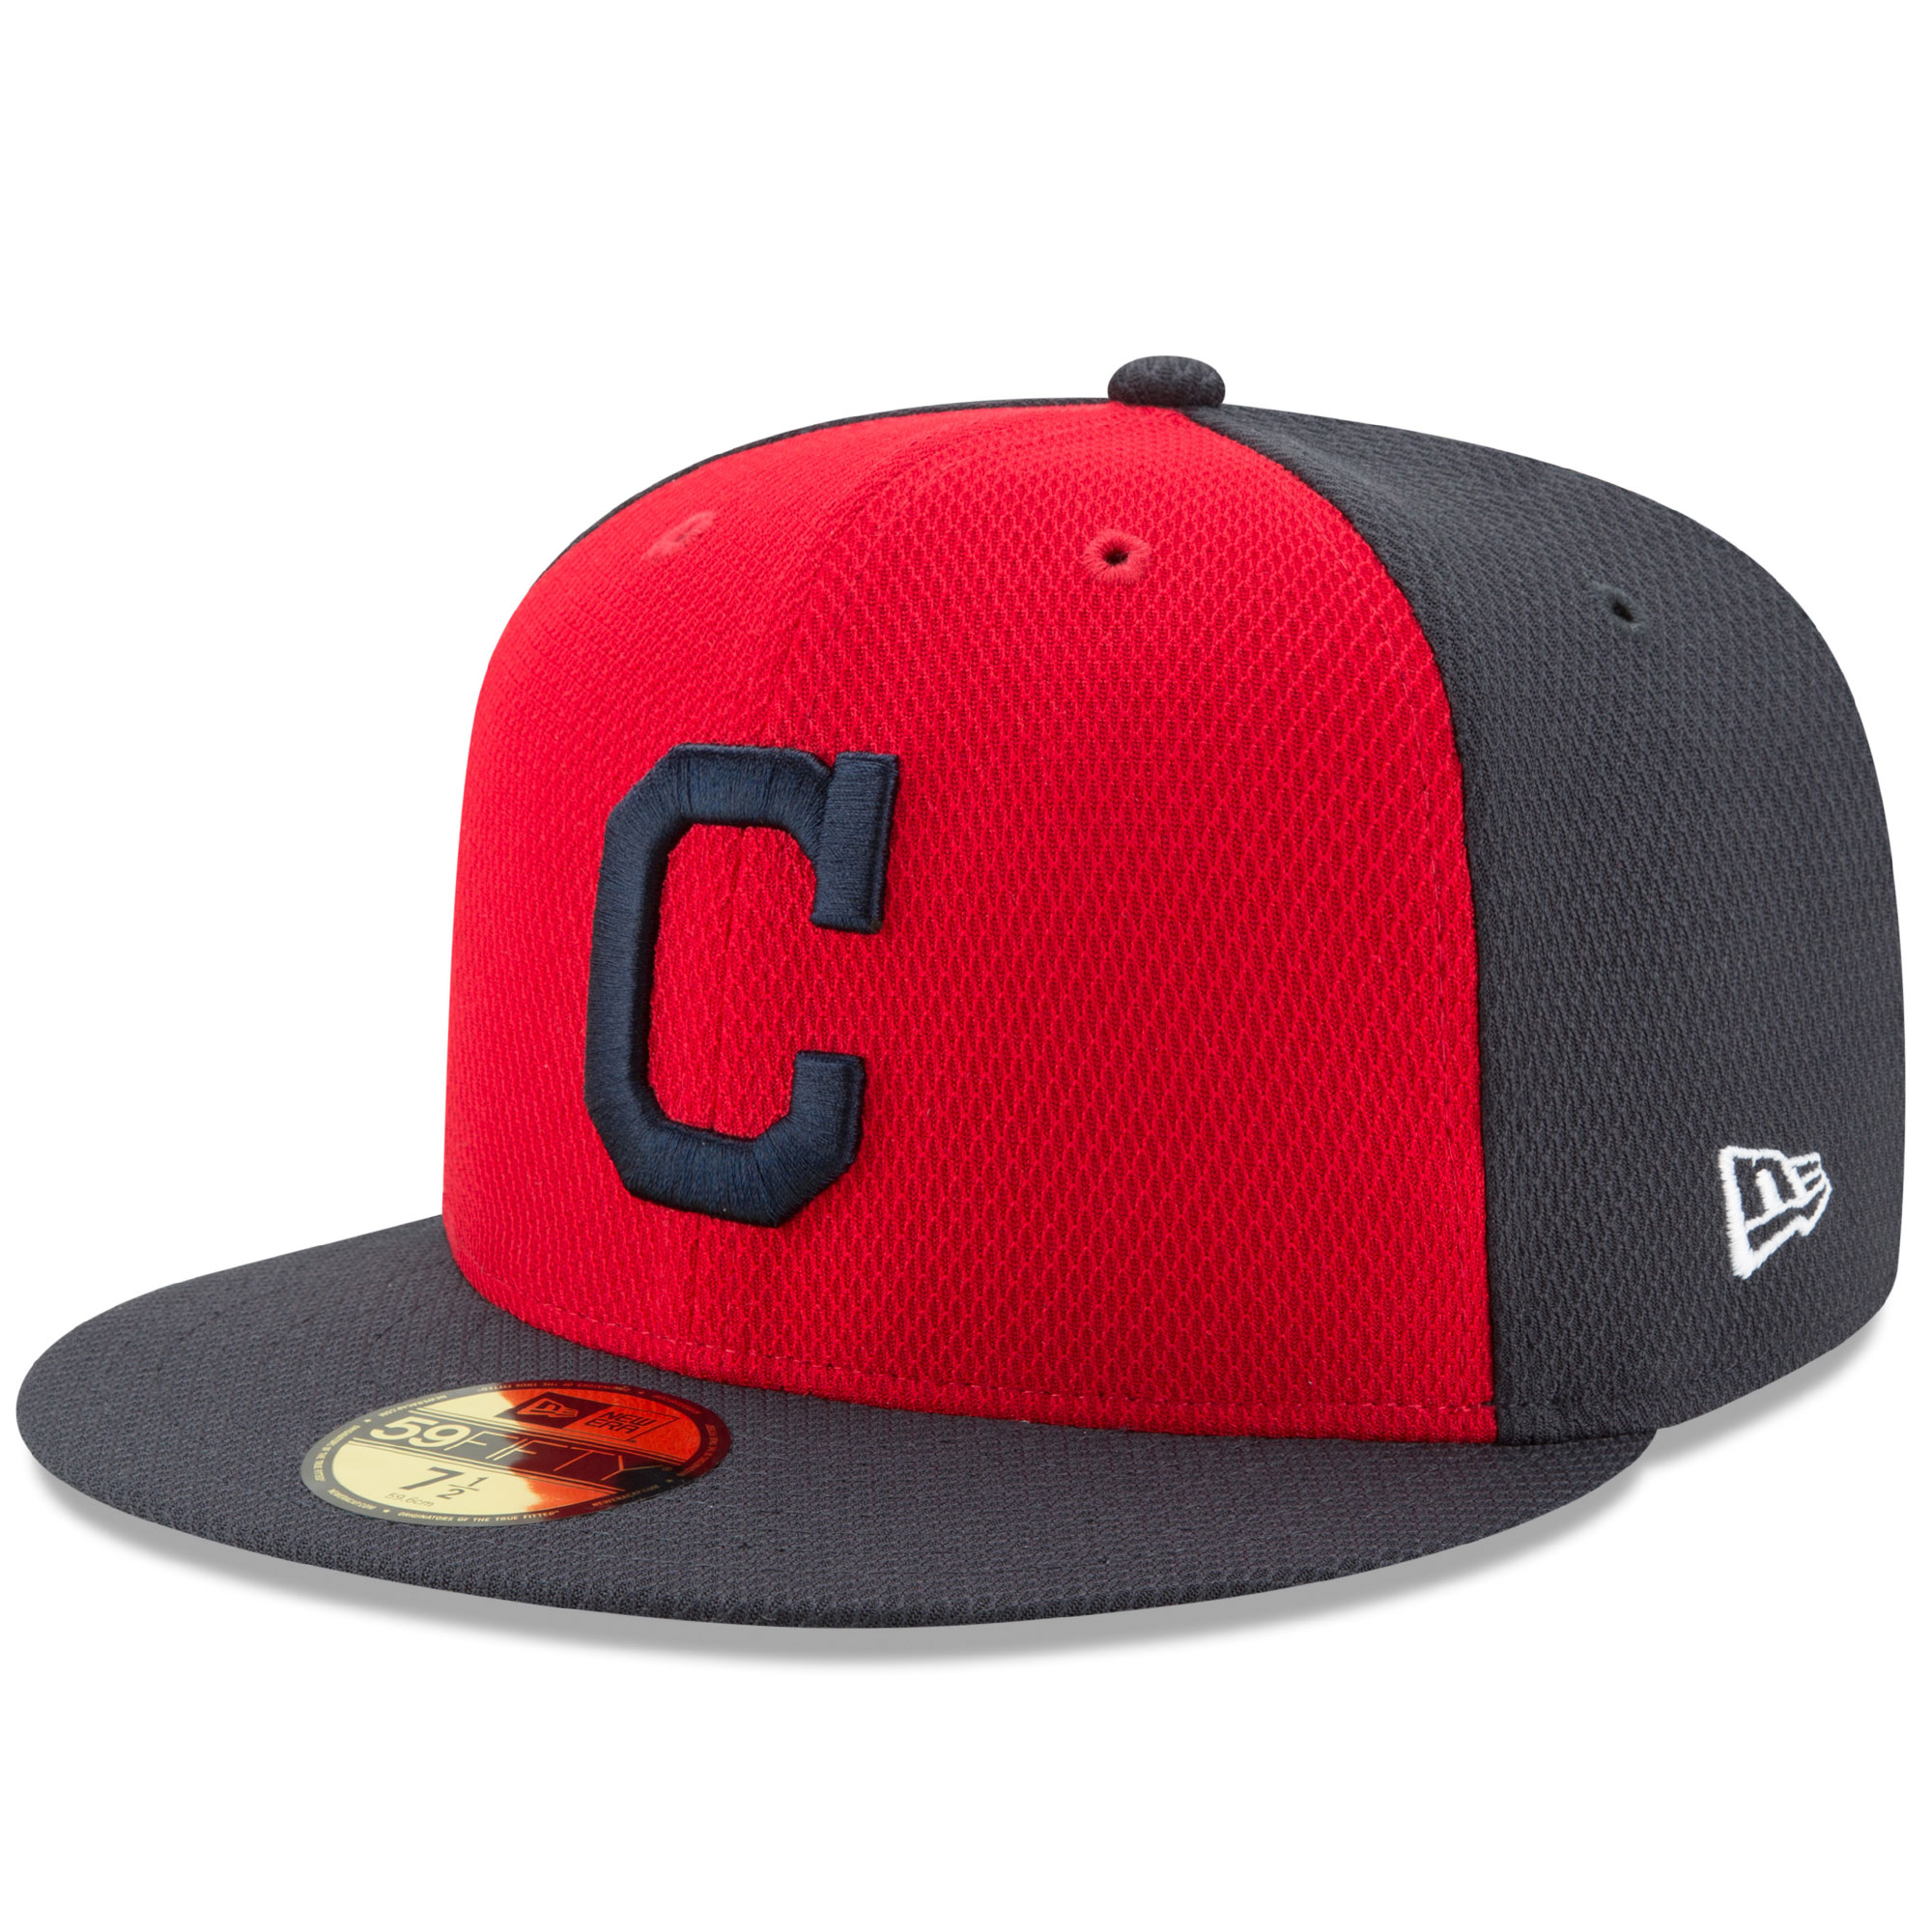 Men's New Era Red/Navy Cleveland Indians Diamond Era 59FIFTY Fitted Hat